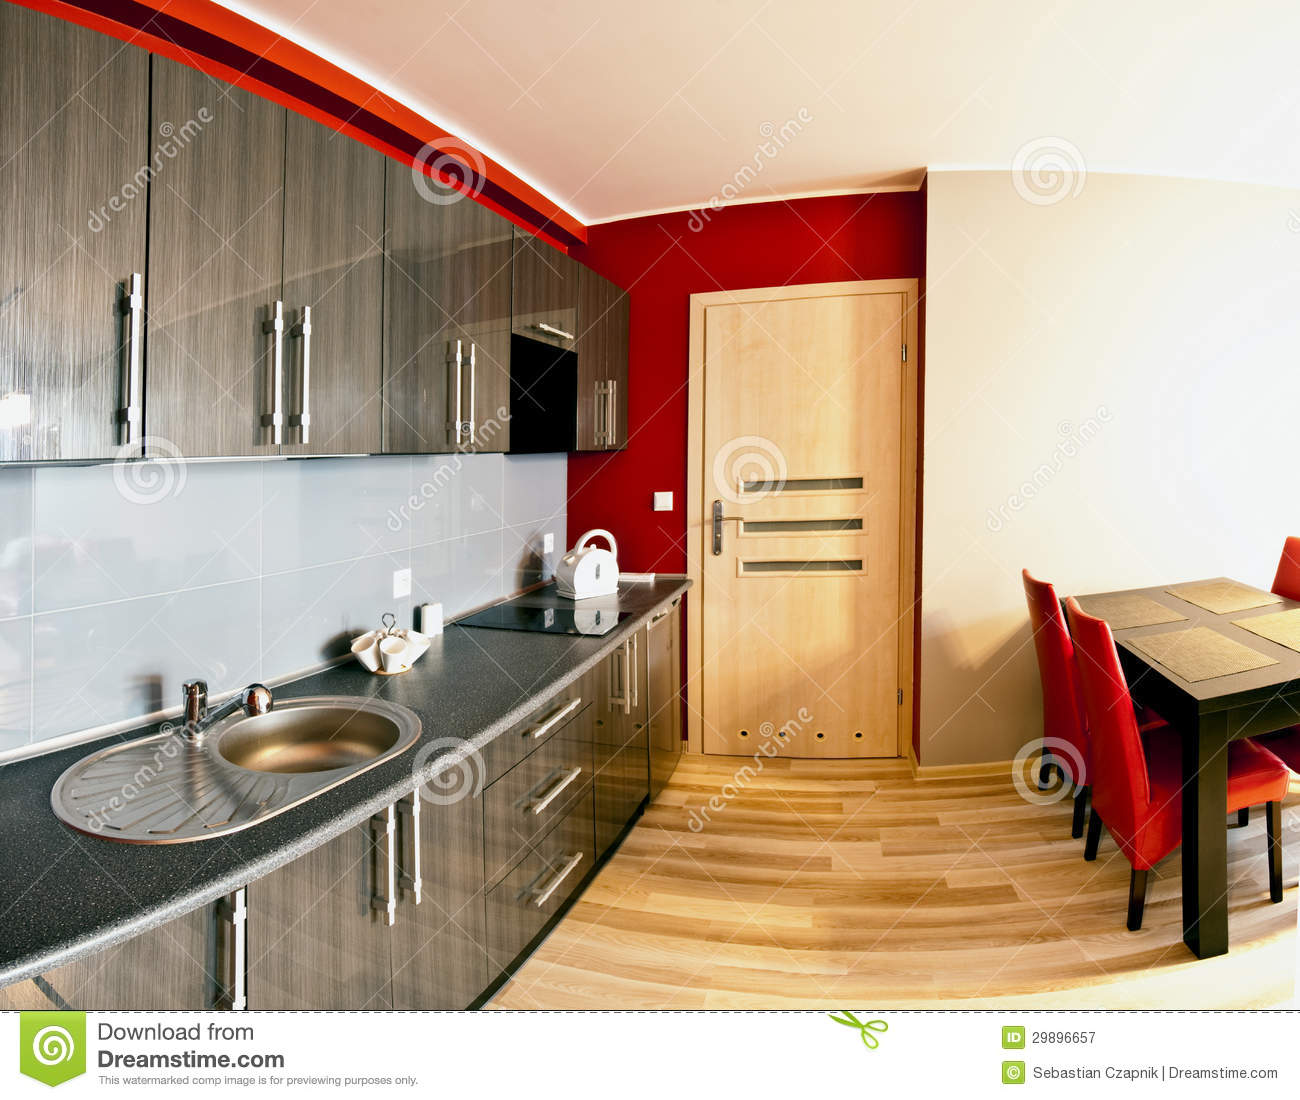 combined kitchen and dining room | Combined Kitchen And Dining Room Stock Image - Image of ...